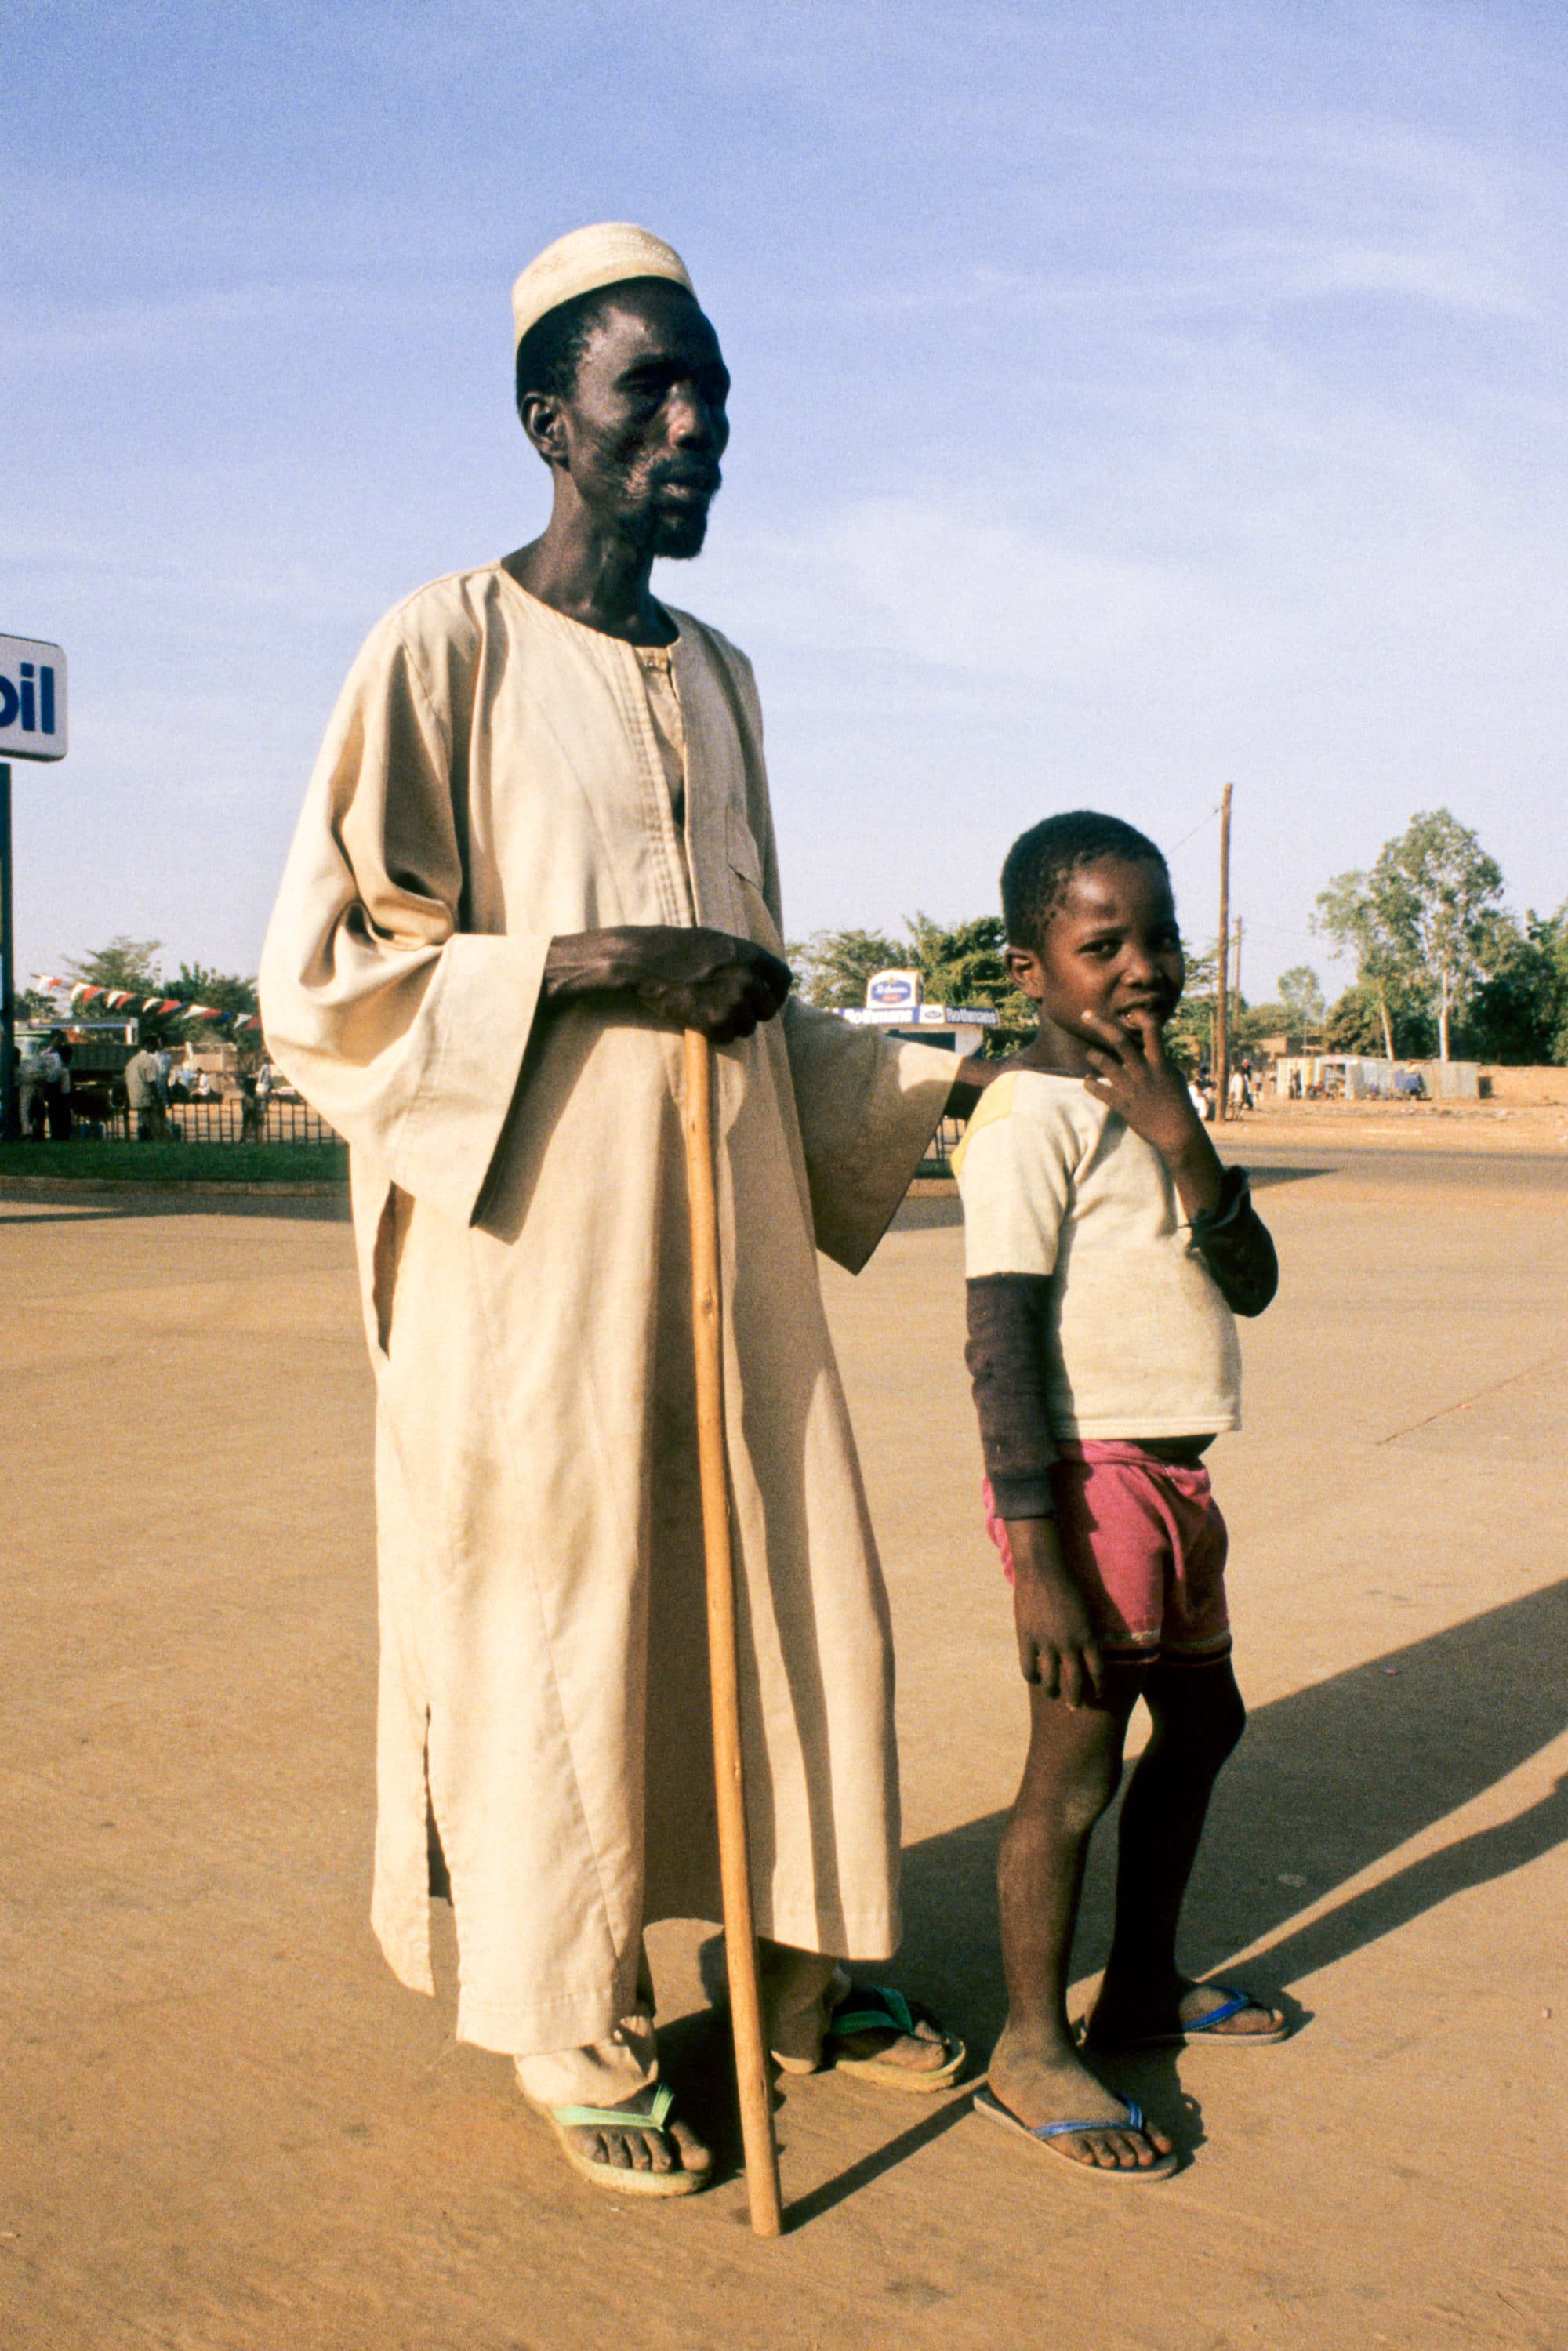 Nigerian man effected by blindness, being led by his son.